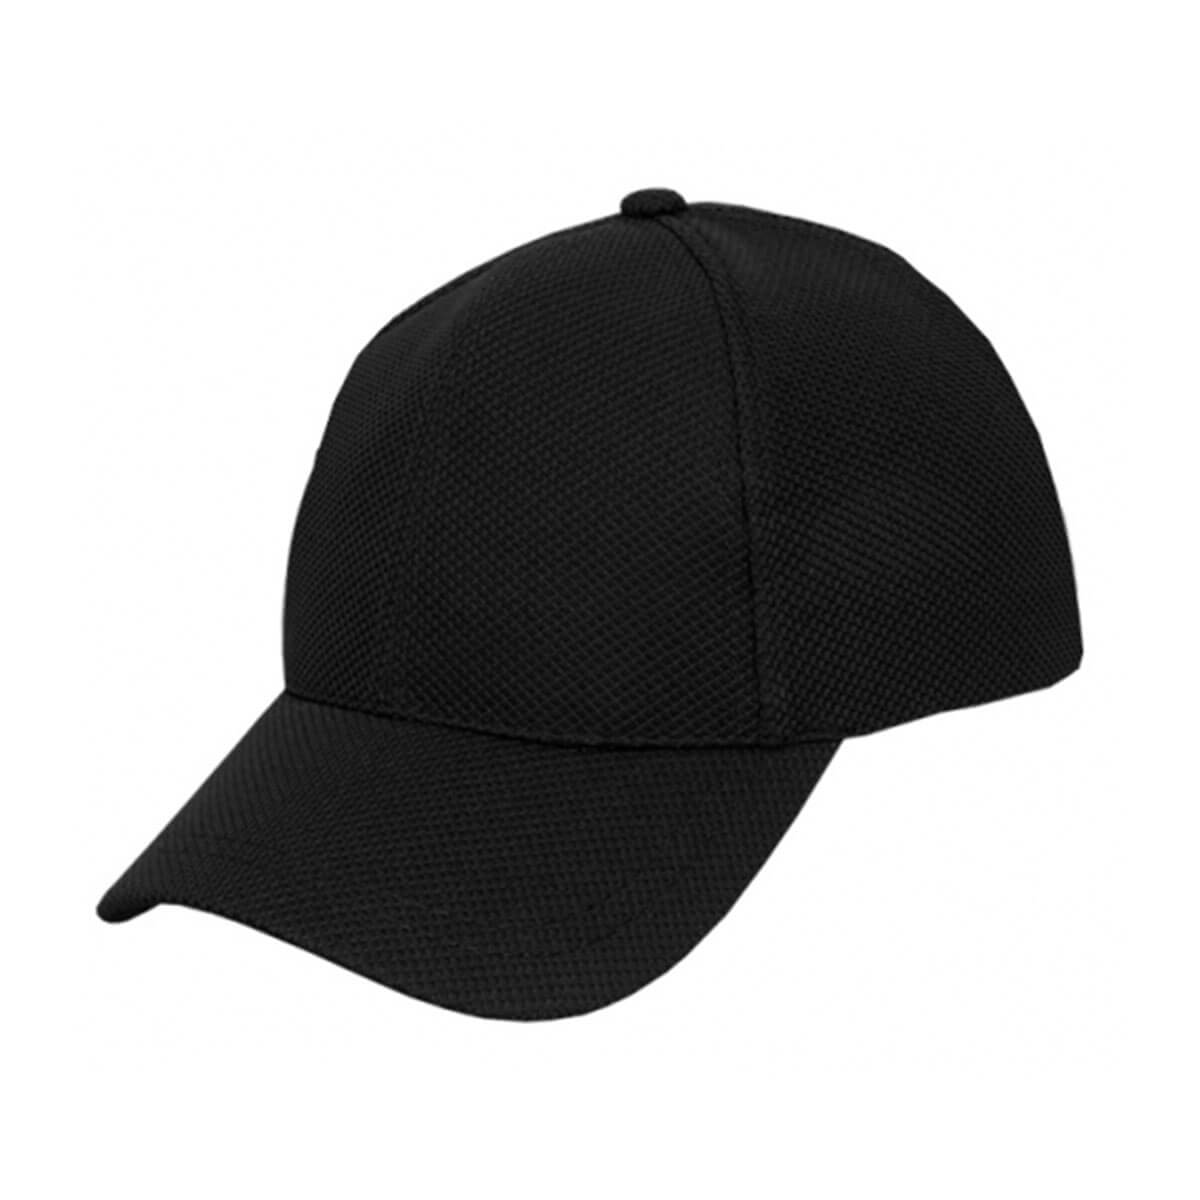 PQ Mesh Plain Sandwich Design Cap-Black